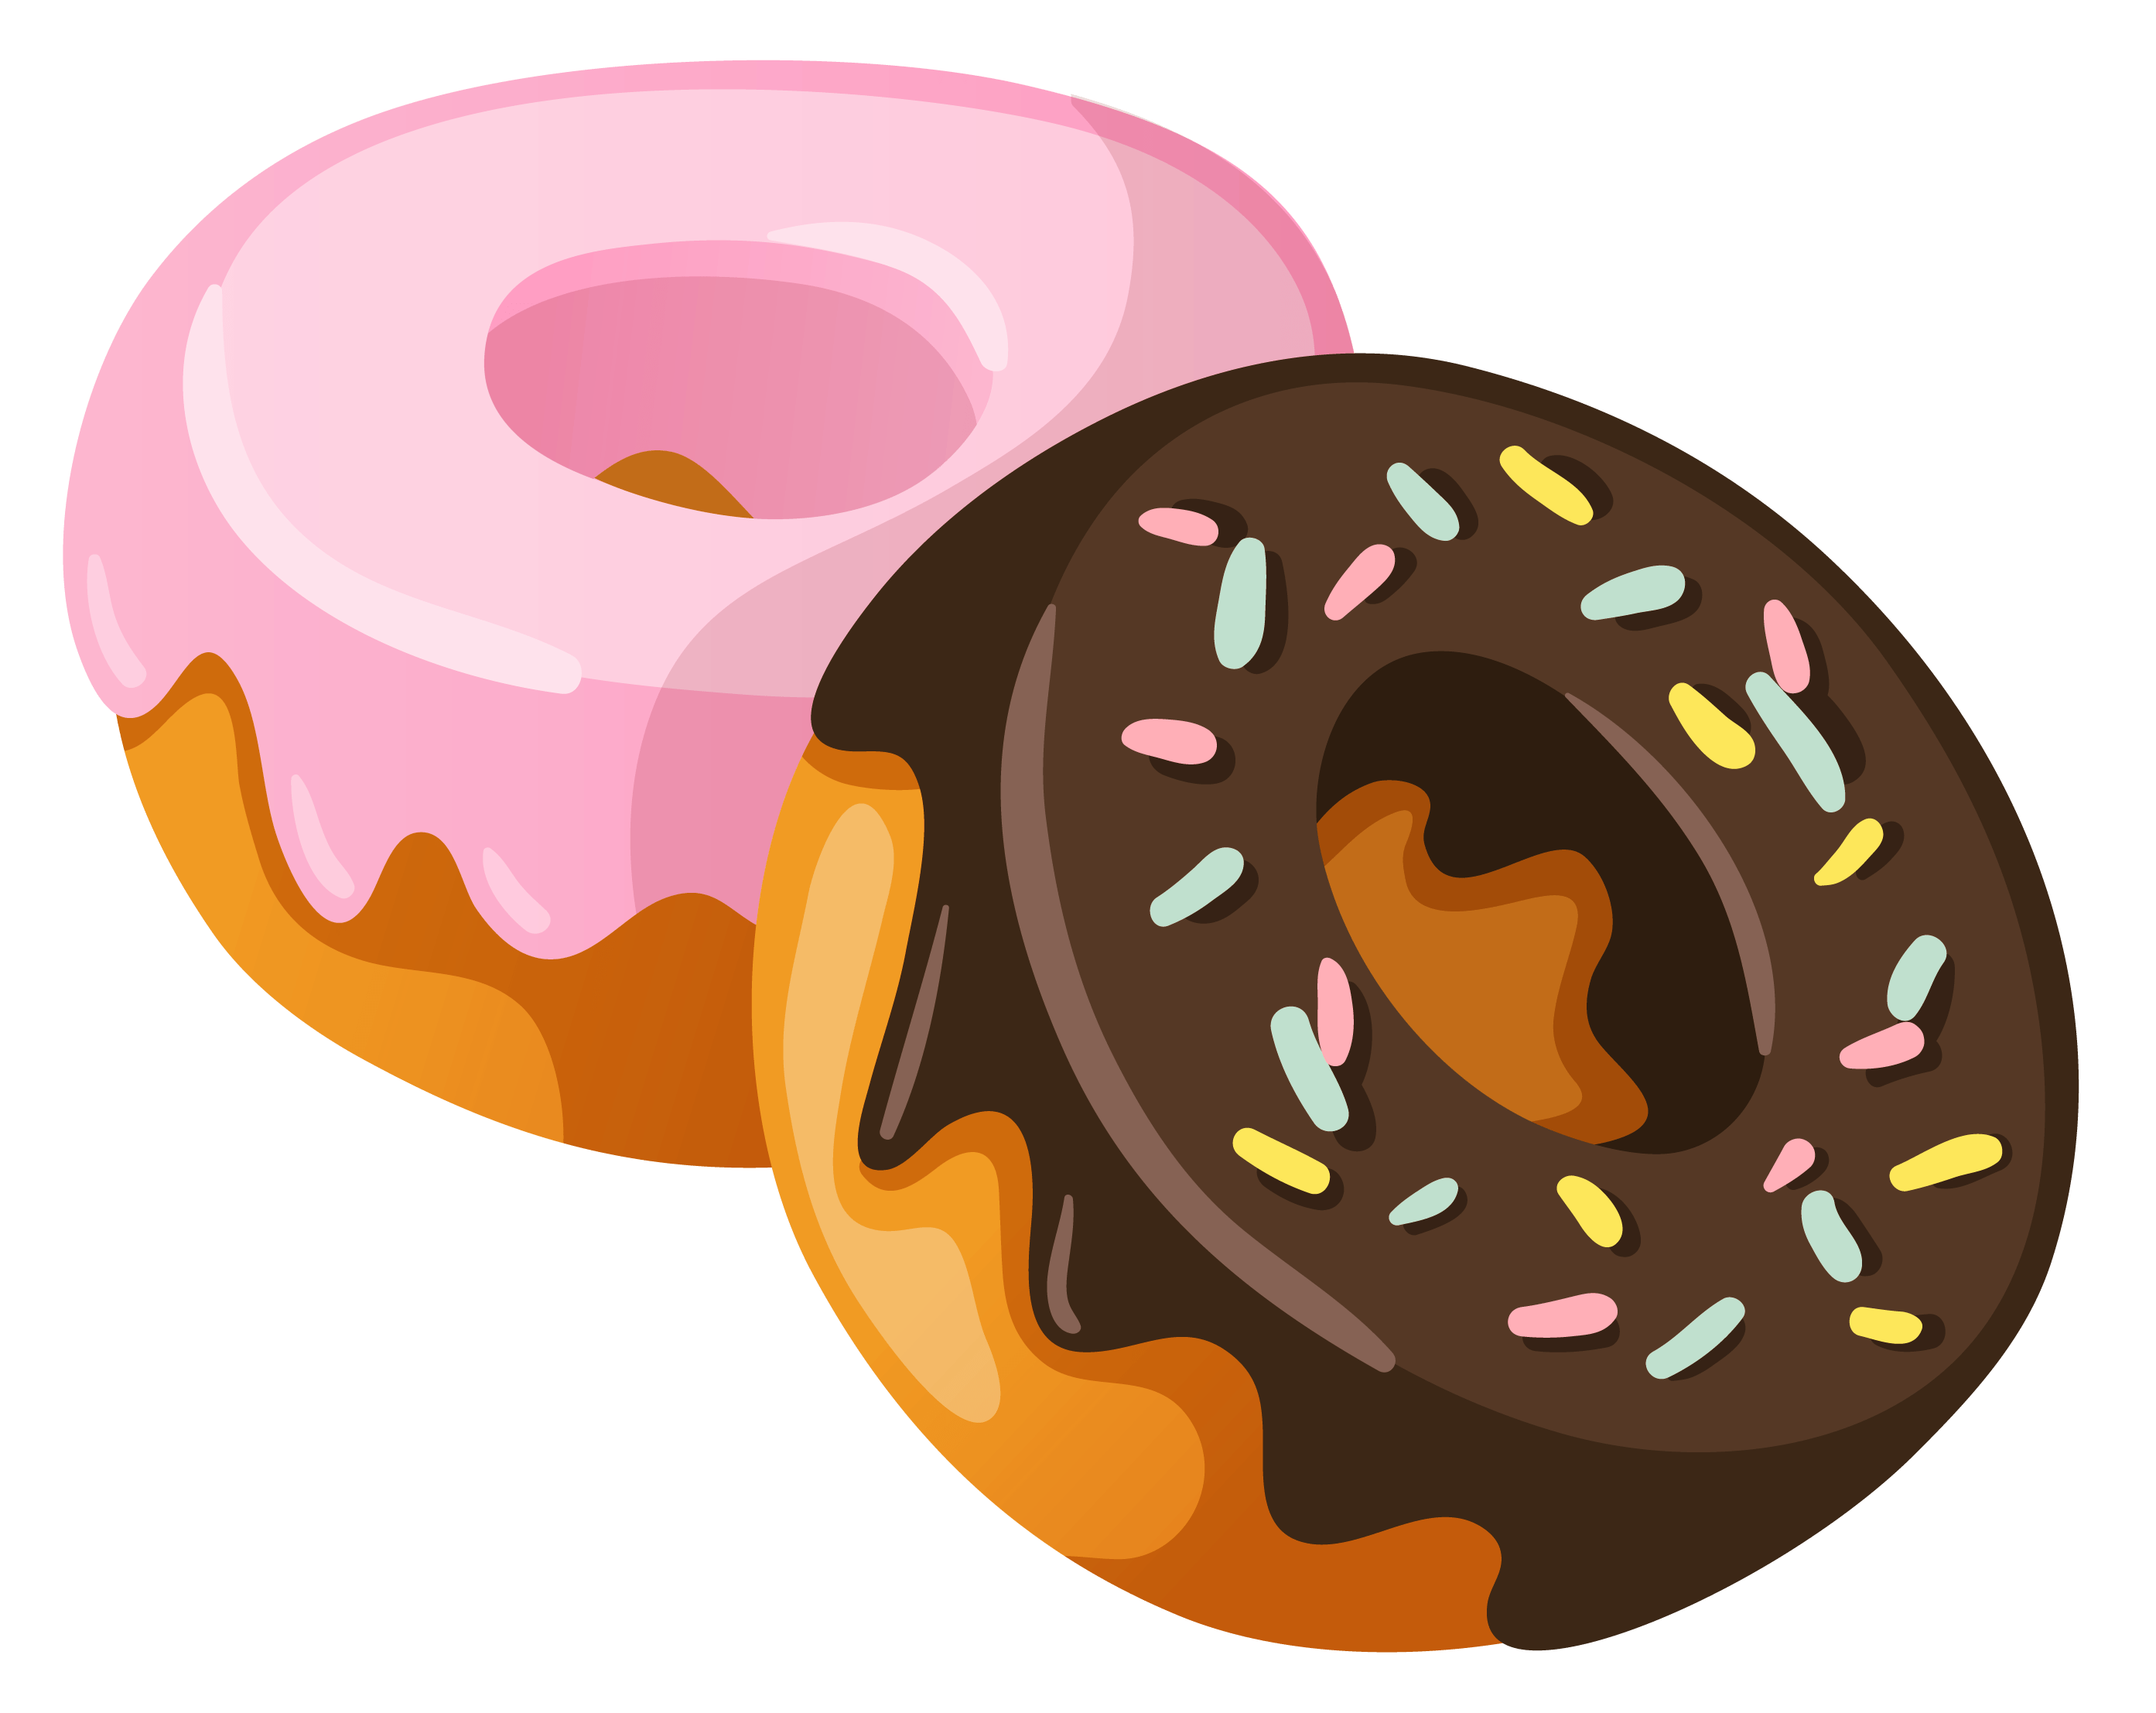 Donut clipart round object. Donuts mssu graphic design